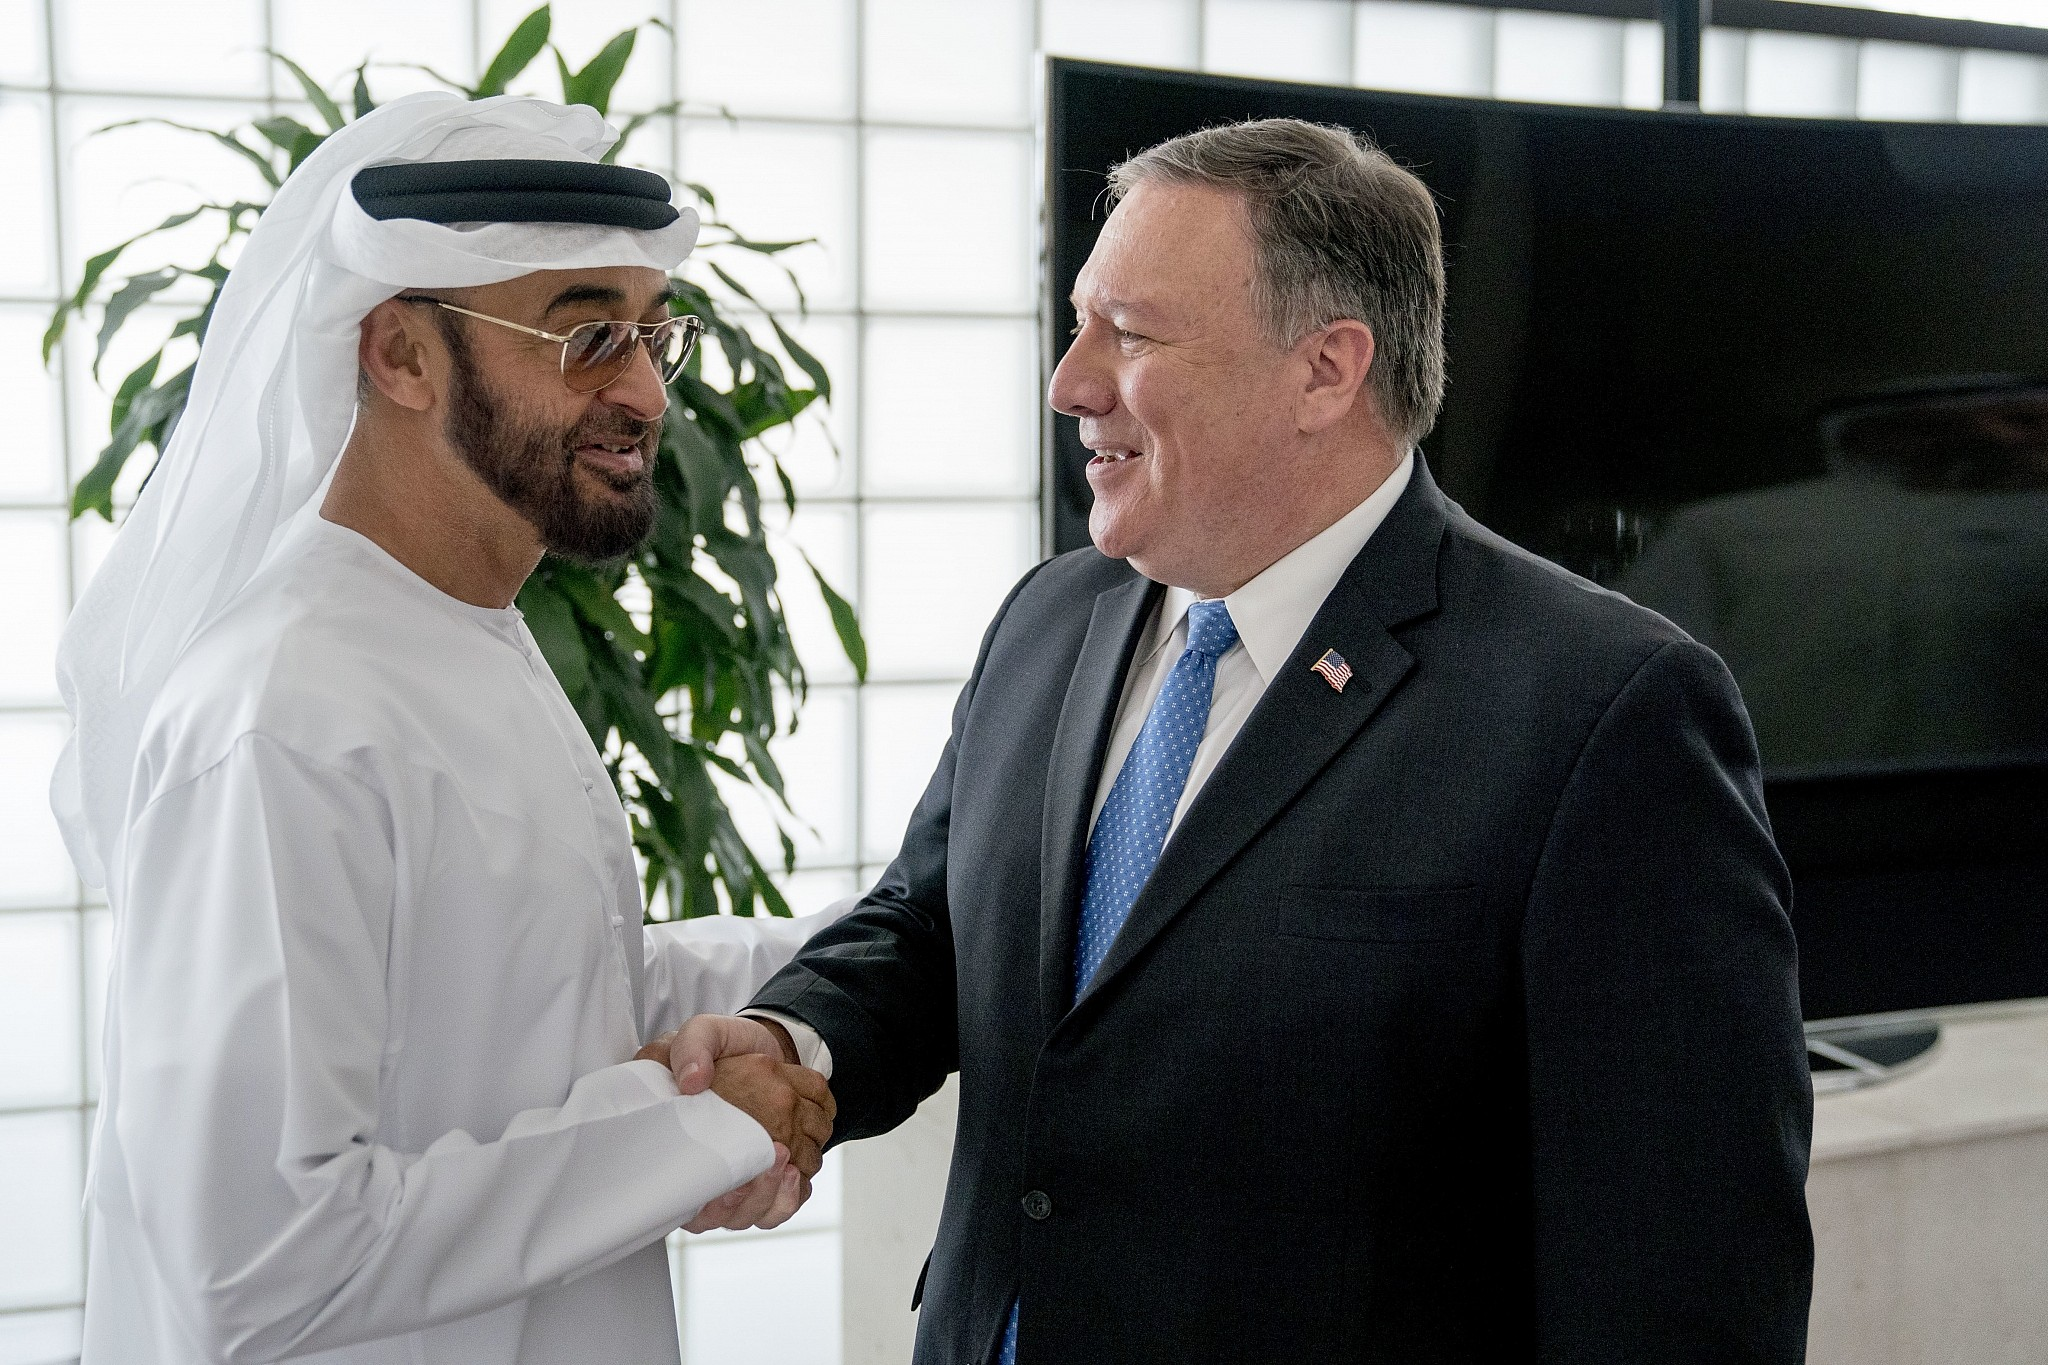 Pompeo talks tough on Iran while visiting UAE